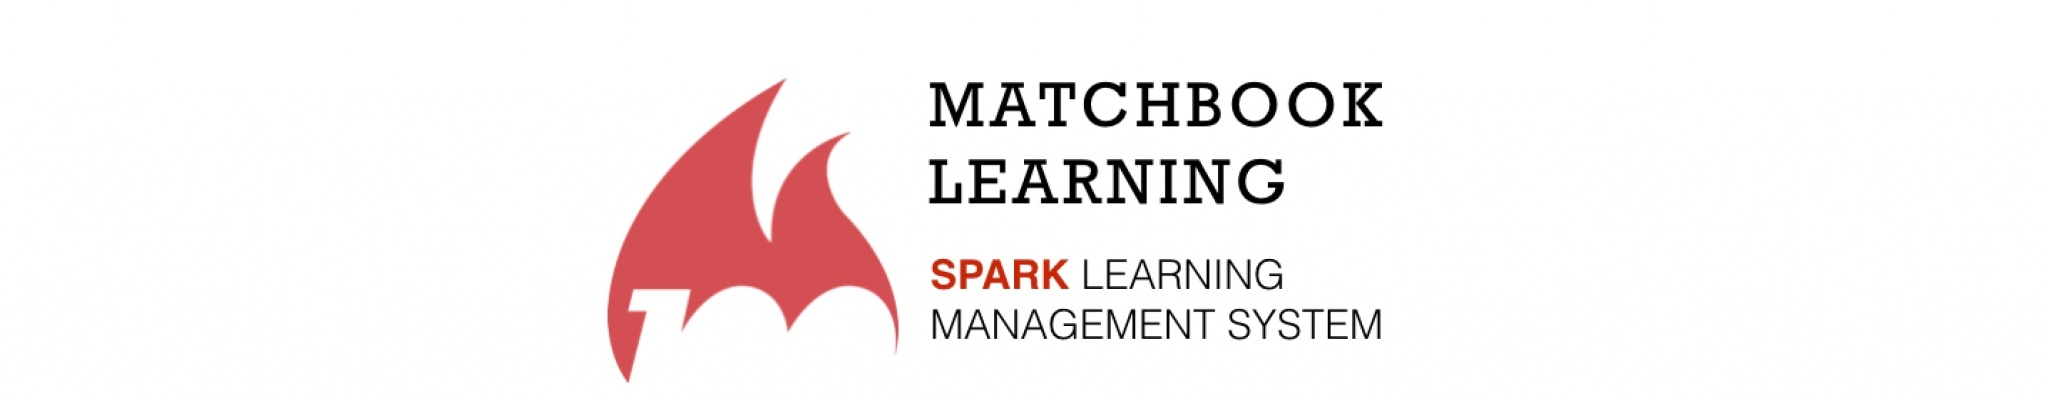 Matchbook Learning Sparks Blended Learning